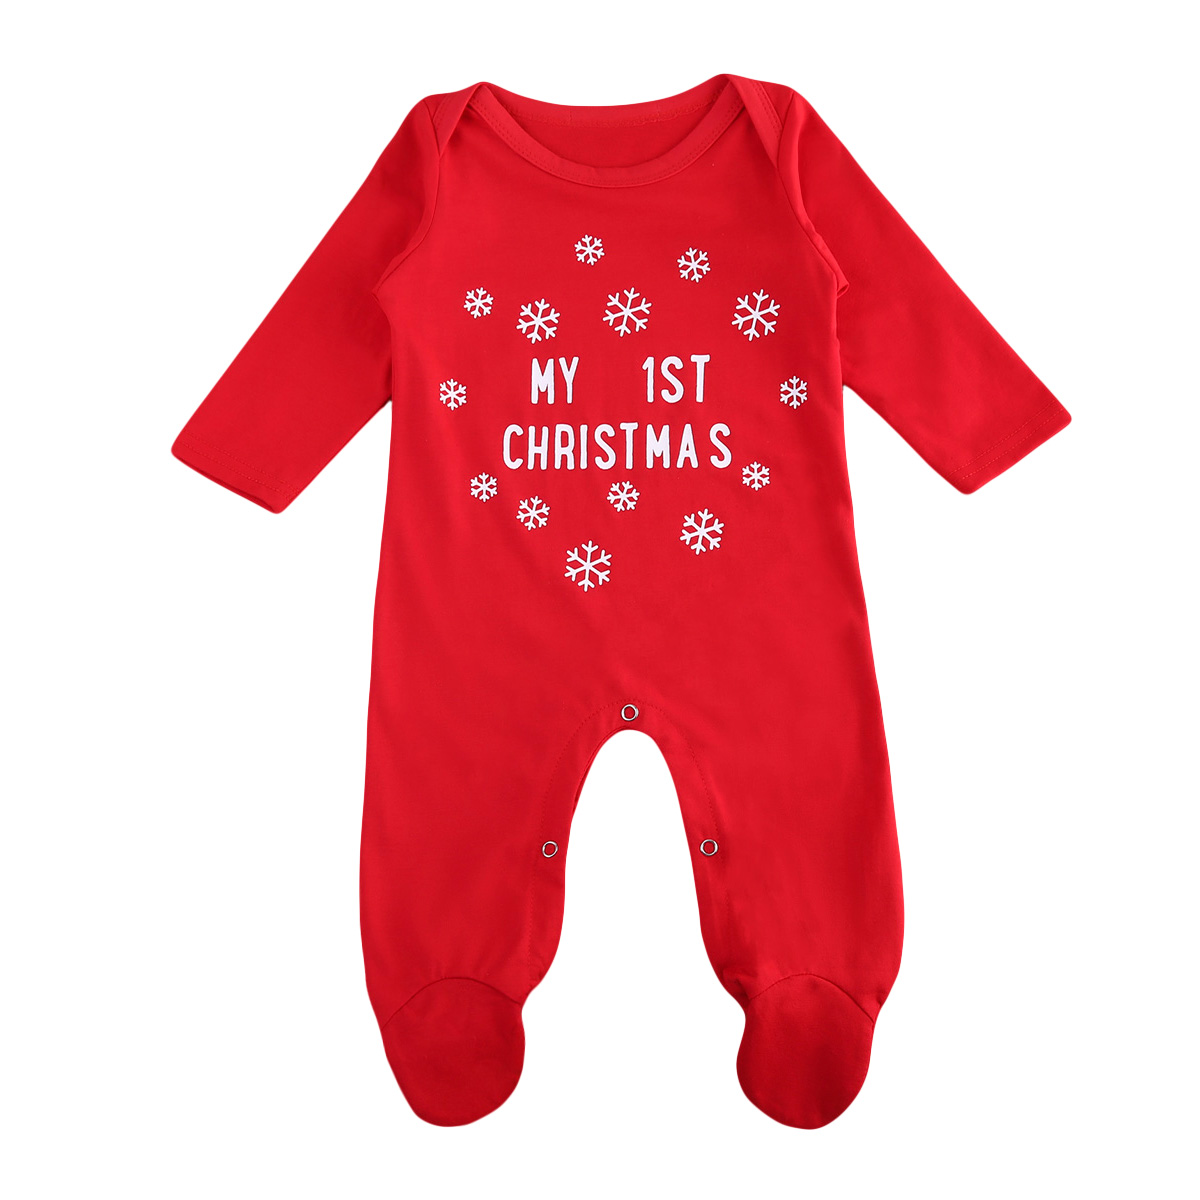 pudcoco christmas baby boy girls romper long sleeves infant newborn baby letter romper first baby christmas clothes red baby clothes infant romper knitting clothes with long sleeves autumn newborn wear